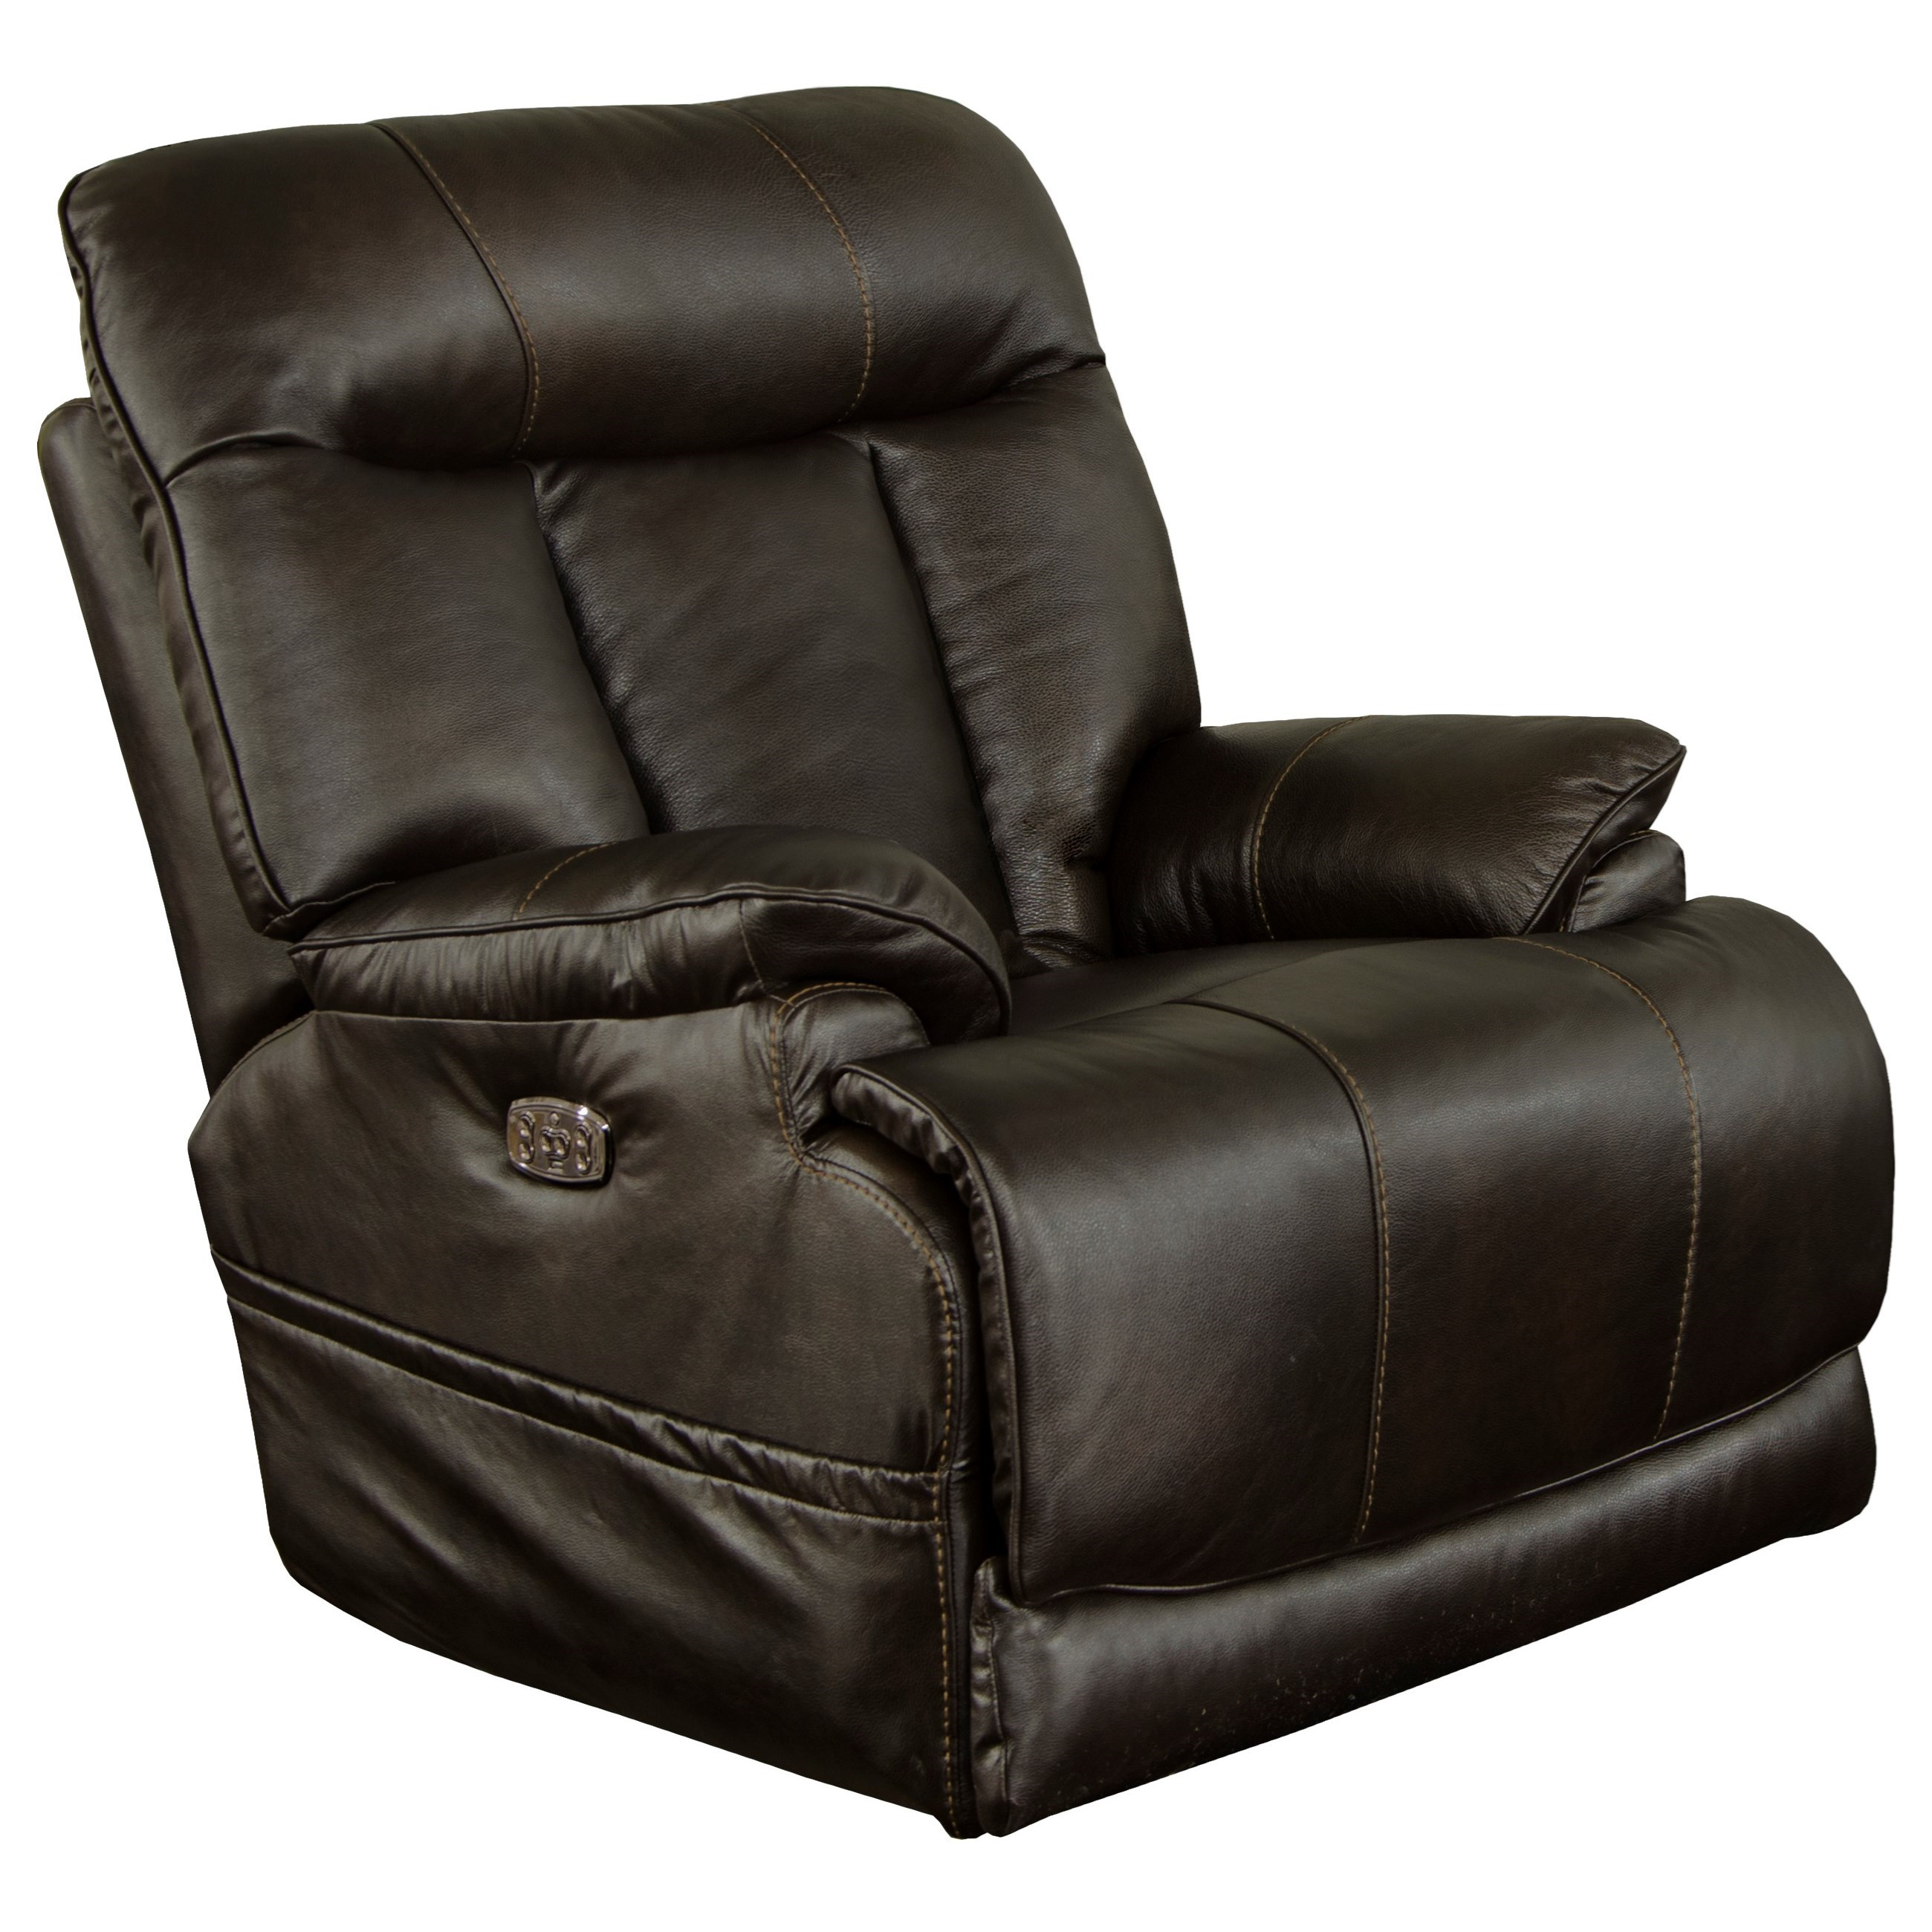 Naples Power Lay Flat Recliner by Catnapper at Northeast Factory Direct